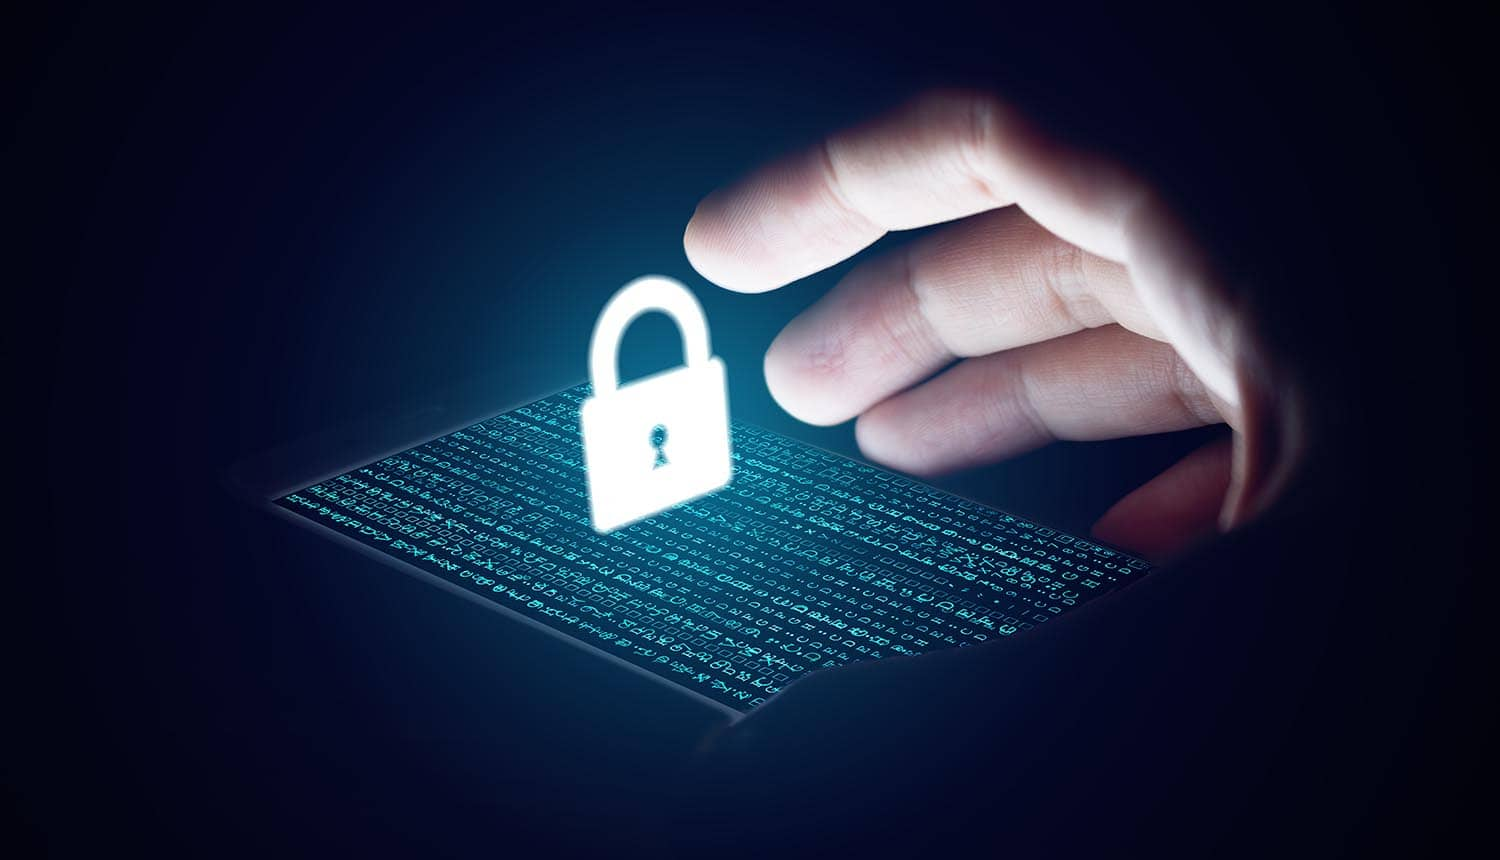 Hand reaches out towards secure lock on smartphone showing Five Eyes proposal to weaken encryption